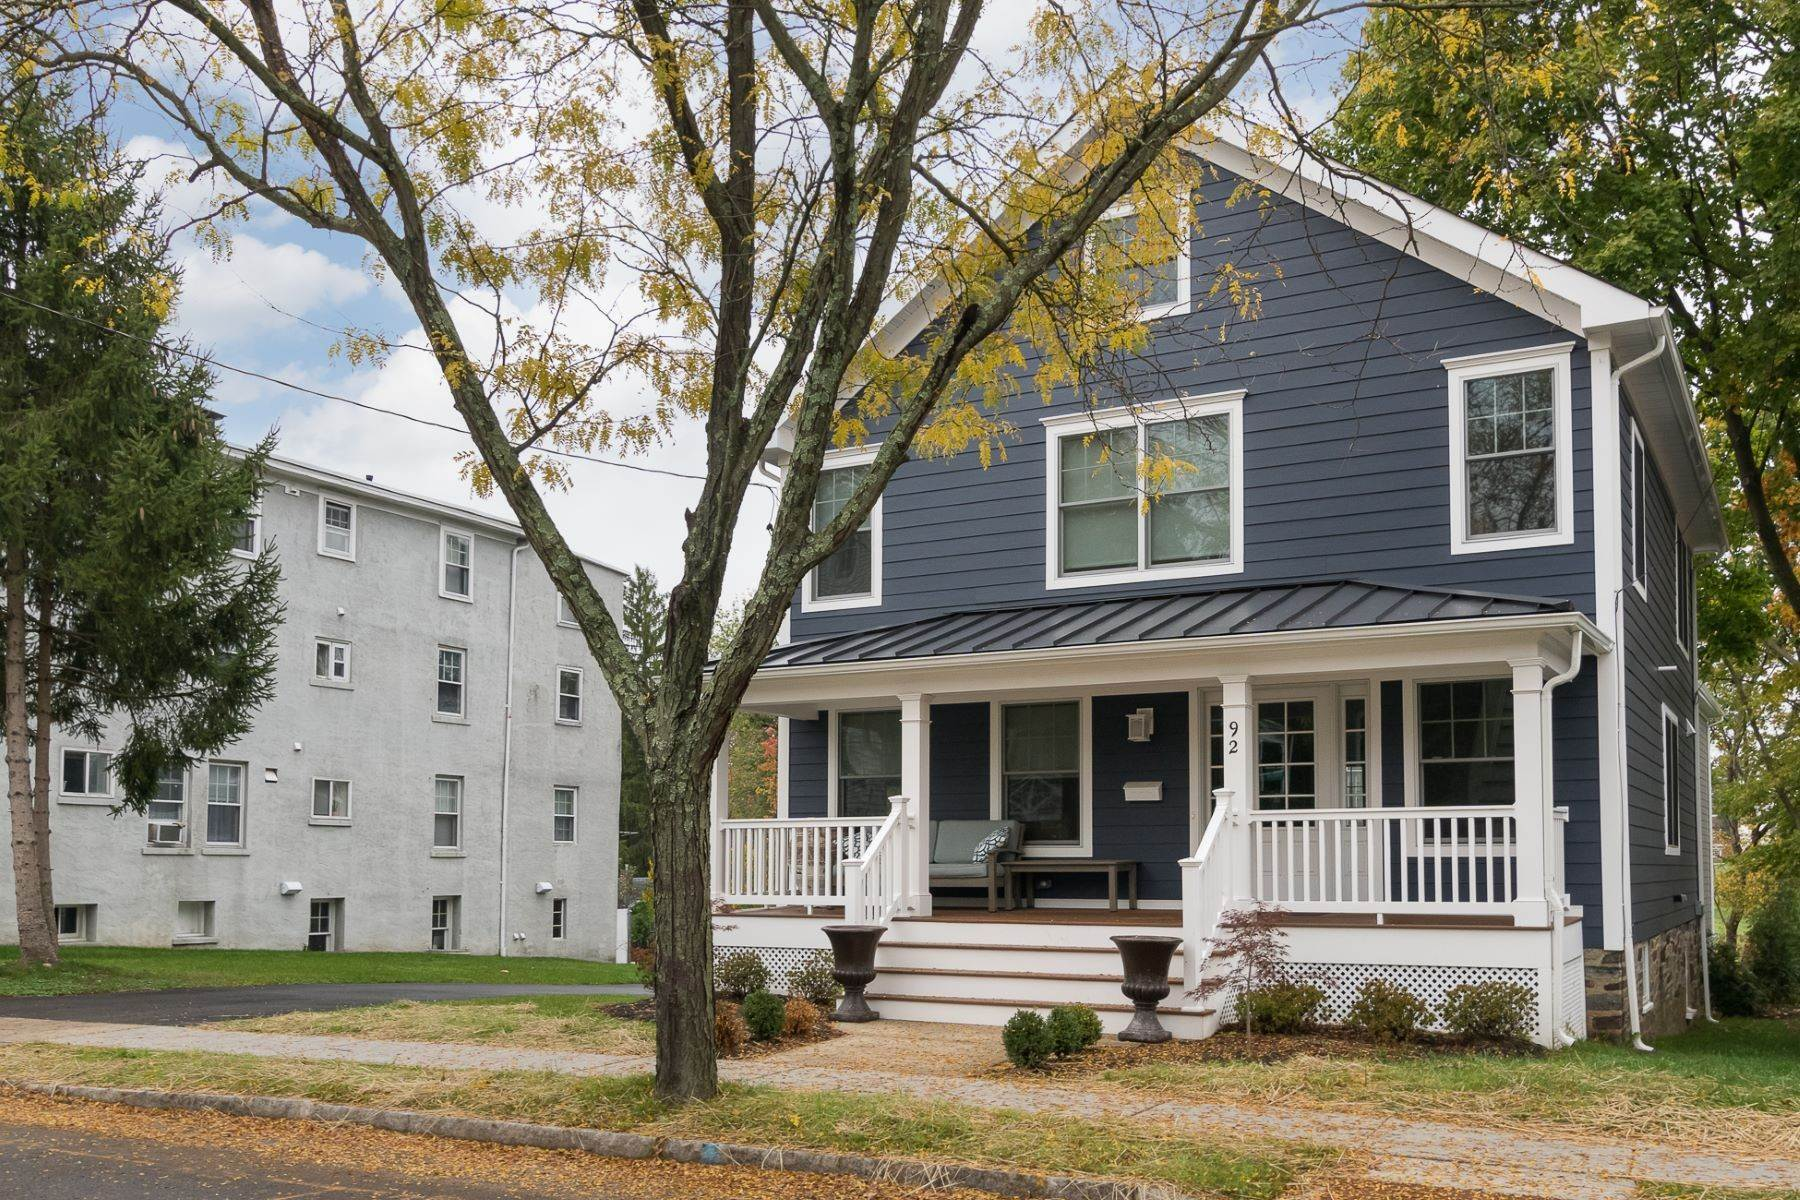 32. Condominiums at Easy Living and Fantastic Location! 92 Spruce Street, Princeton, New Jersey 08540 United States